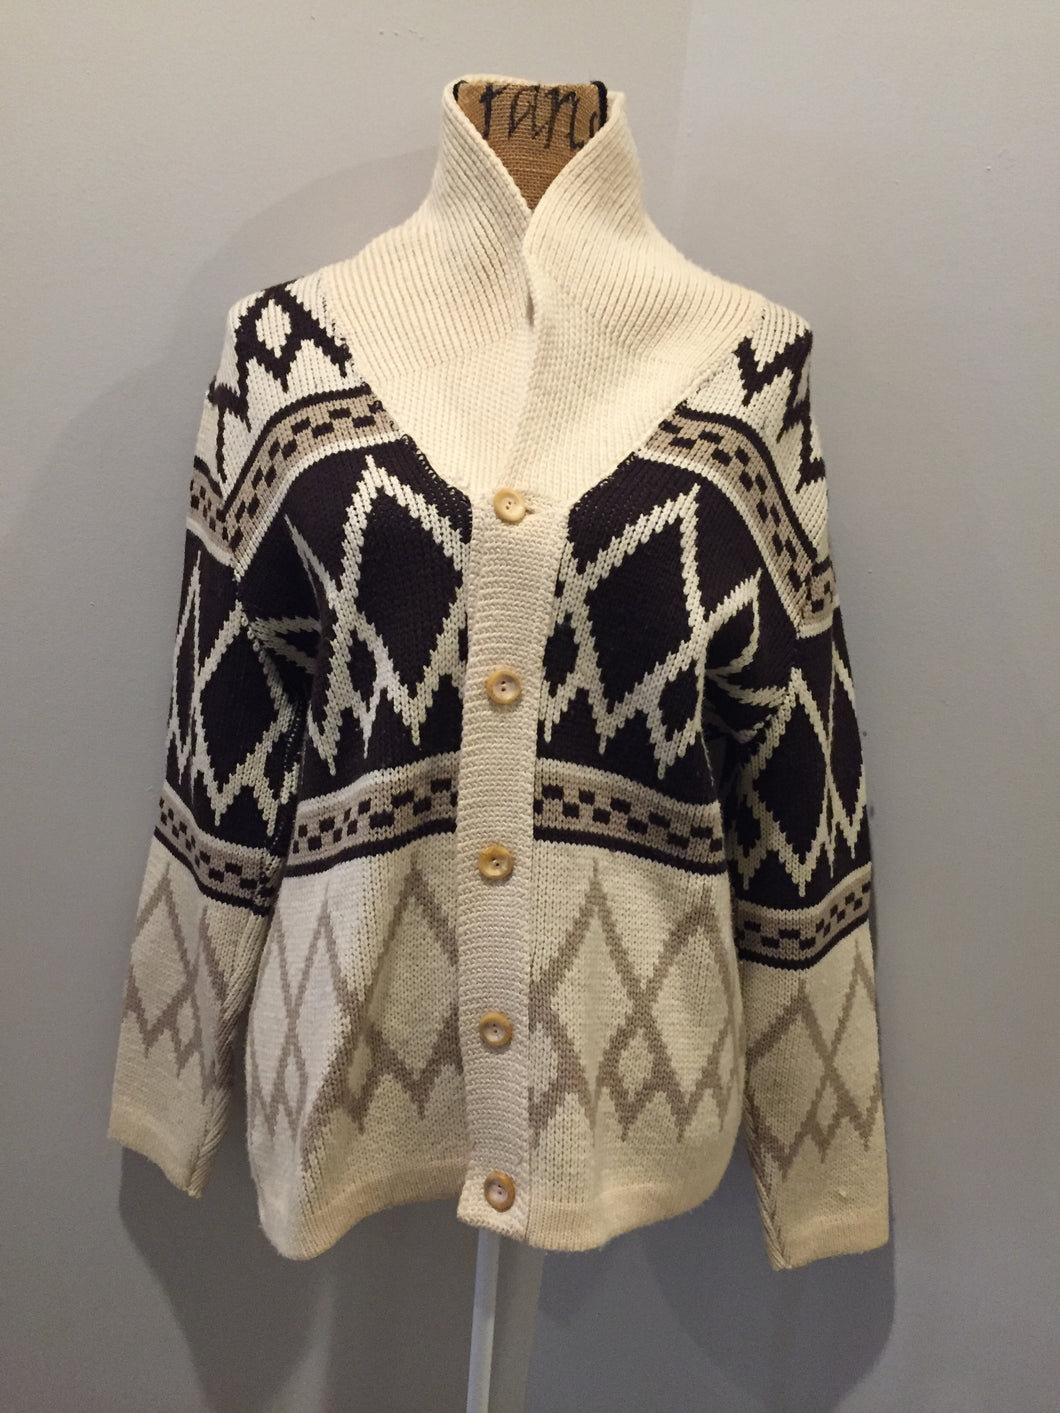 Tundra pure virgin wool cardigan in cream and brown with shawl collar and button closures. Made in Canada. Size medium